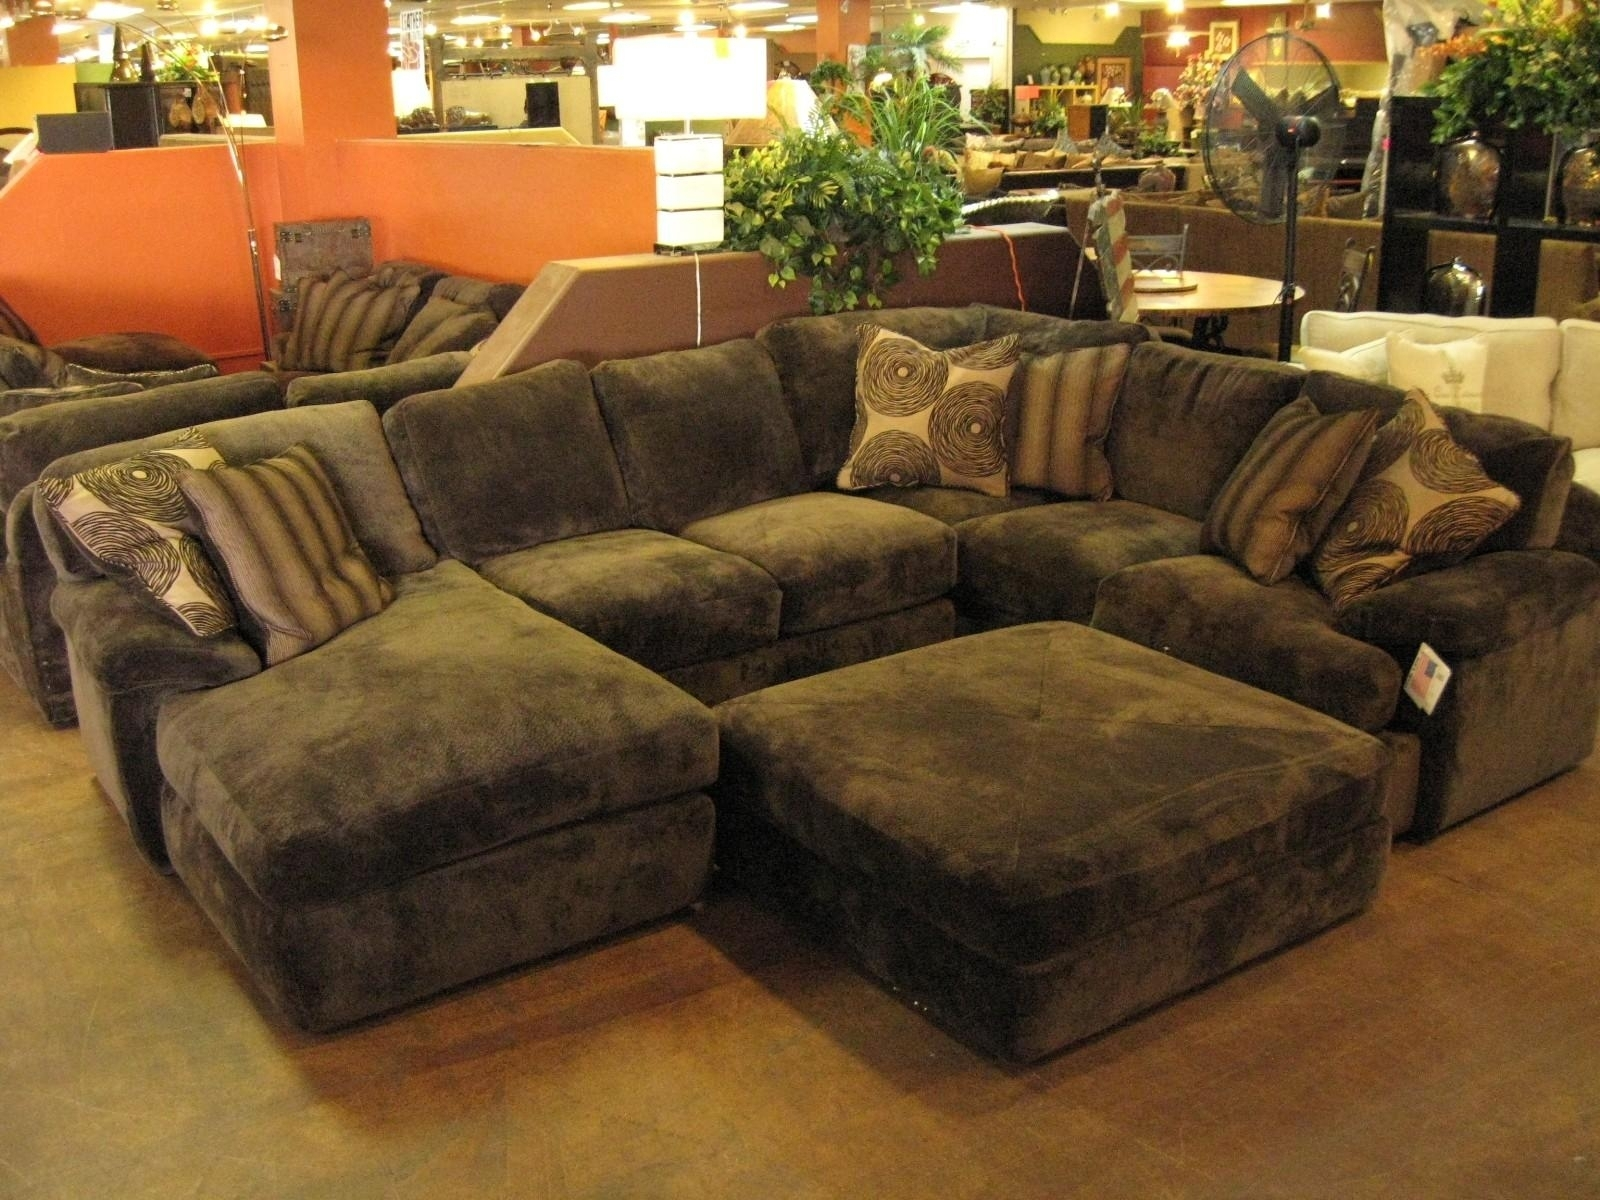 20 Top Sectional Sofa With Large Ottoman | Sofa Ideas With Regard To Sectional Sofas With Ottoman (Photo 3 of 15)